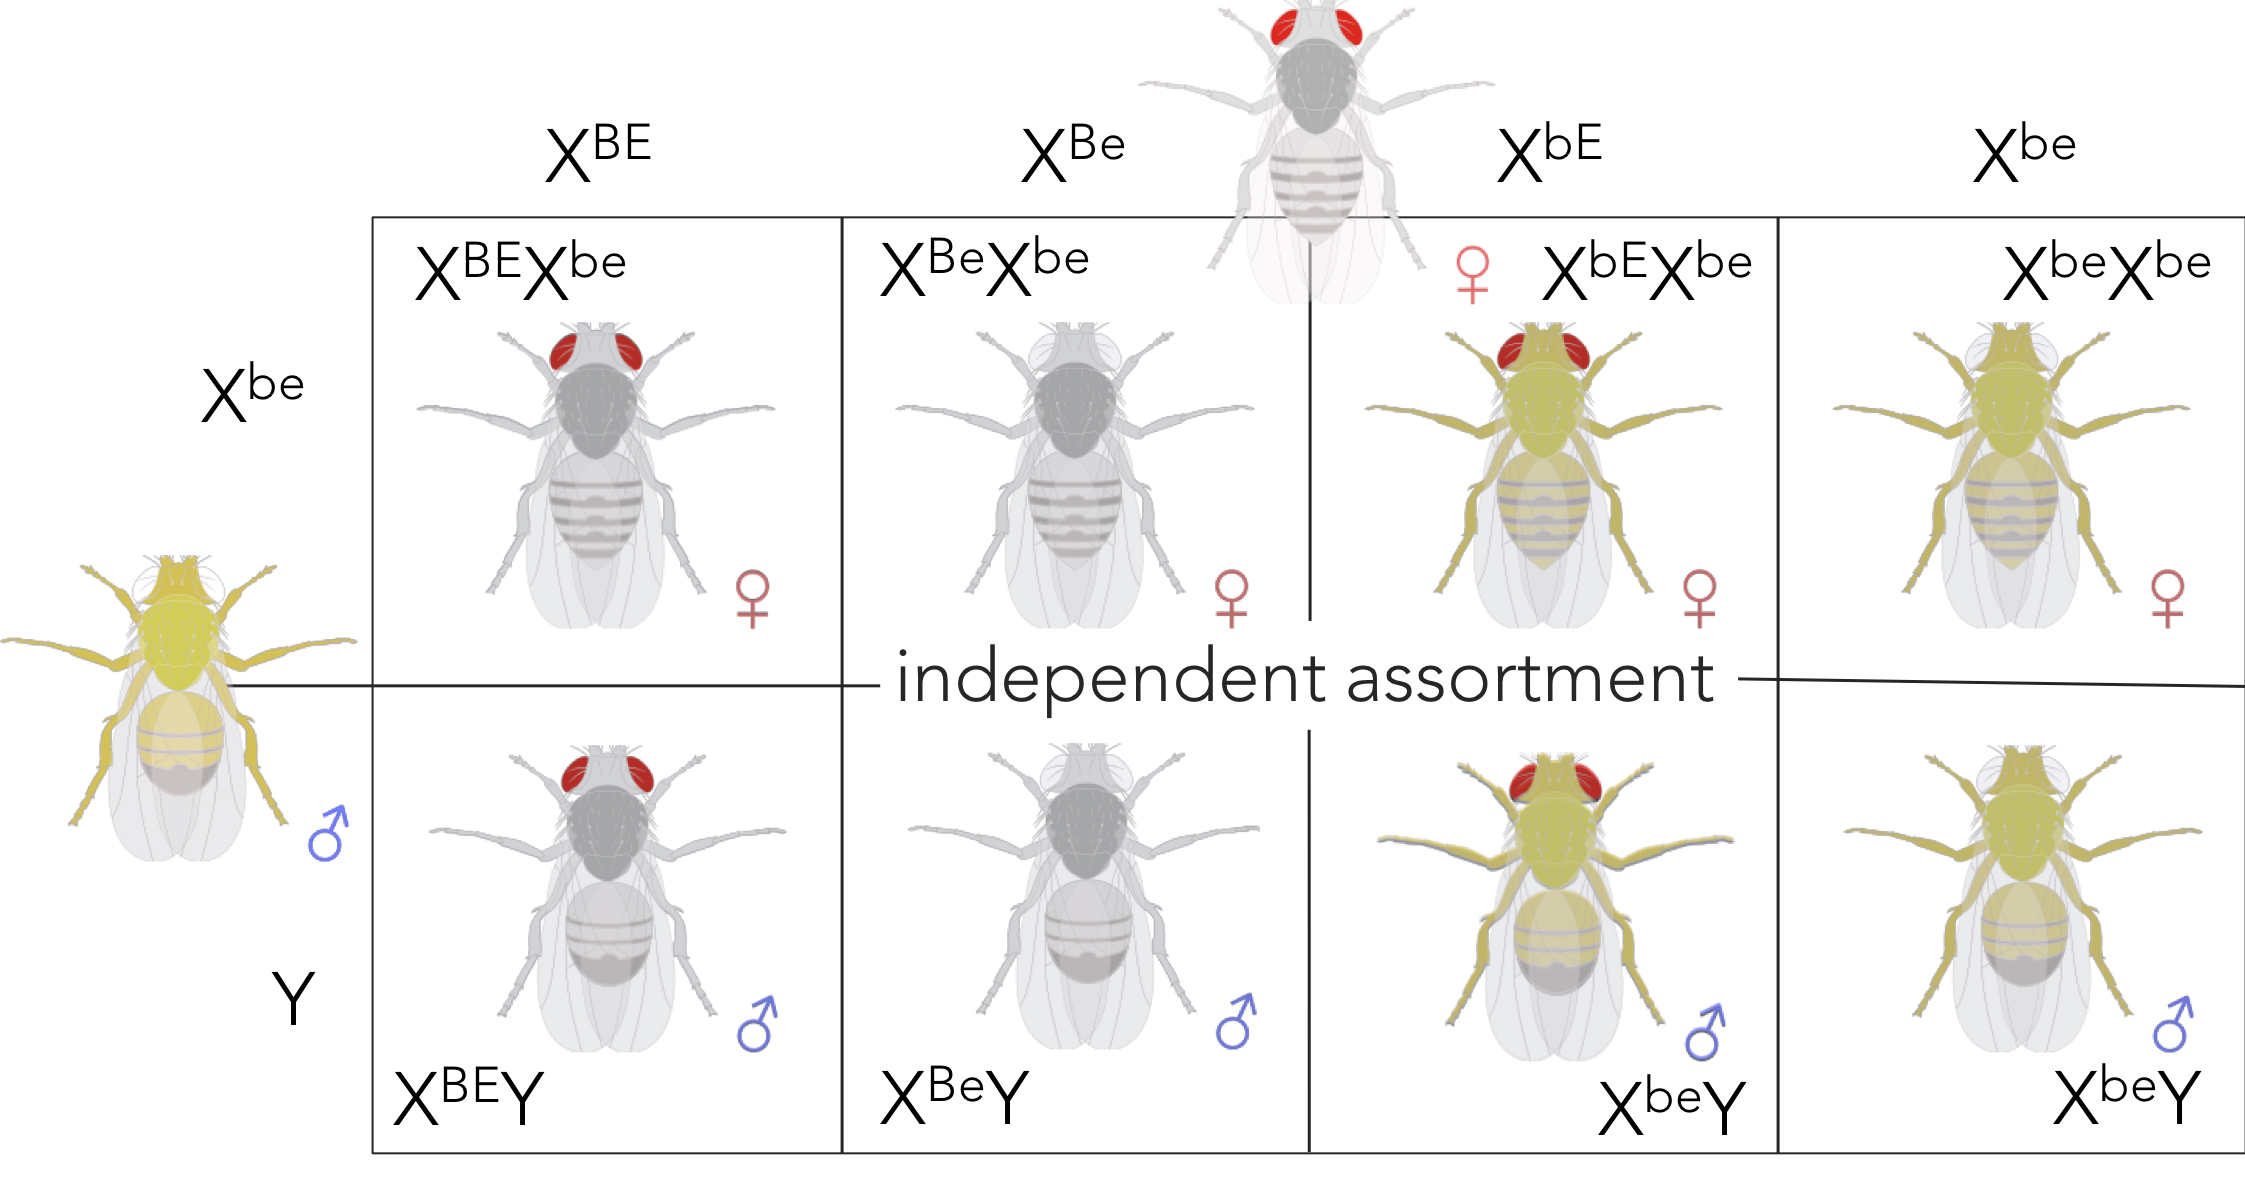 Figure 13.  Expected phenotypic ratio of XBEXbe x XbeY supporting independent assortment. Removing sex from the ratio, the expected phenotypic ratio supporting independent assortment is 1 red/grey : 1 white/grey : 1 red/yellow : 1 white yellow.